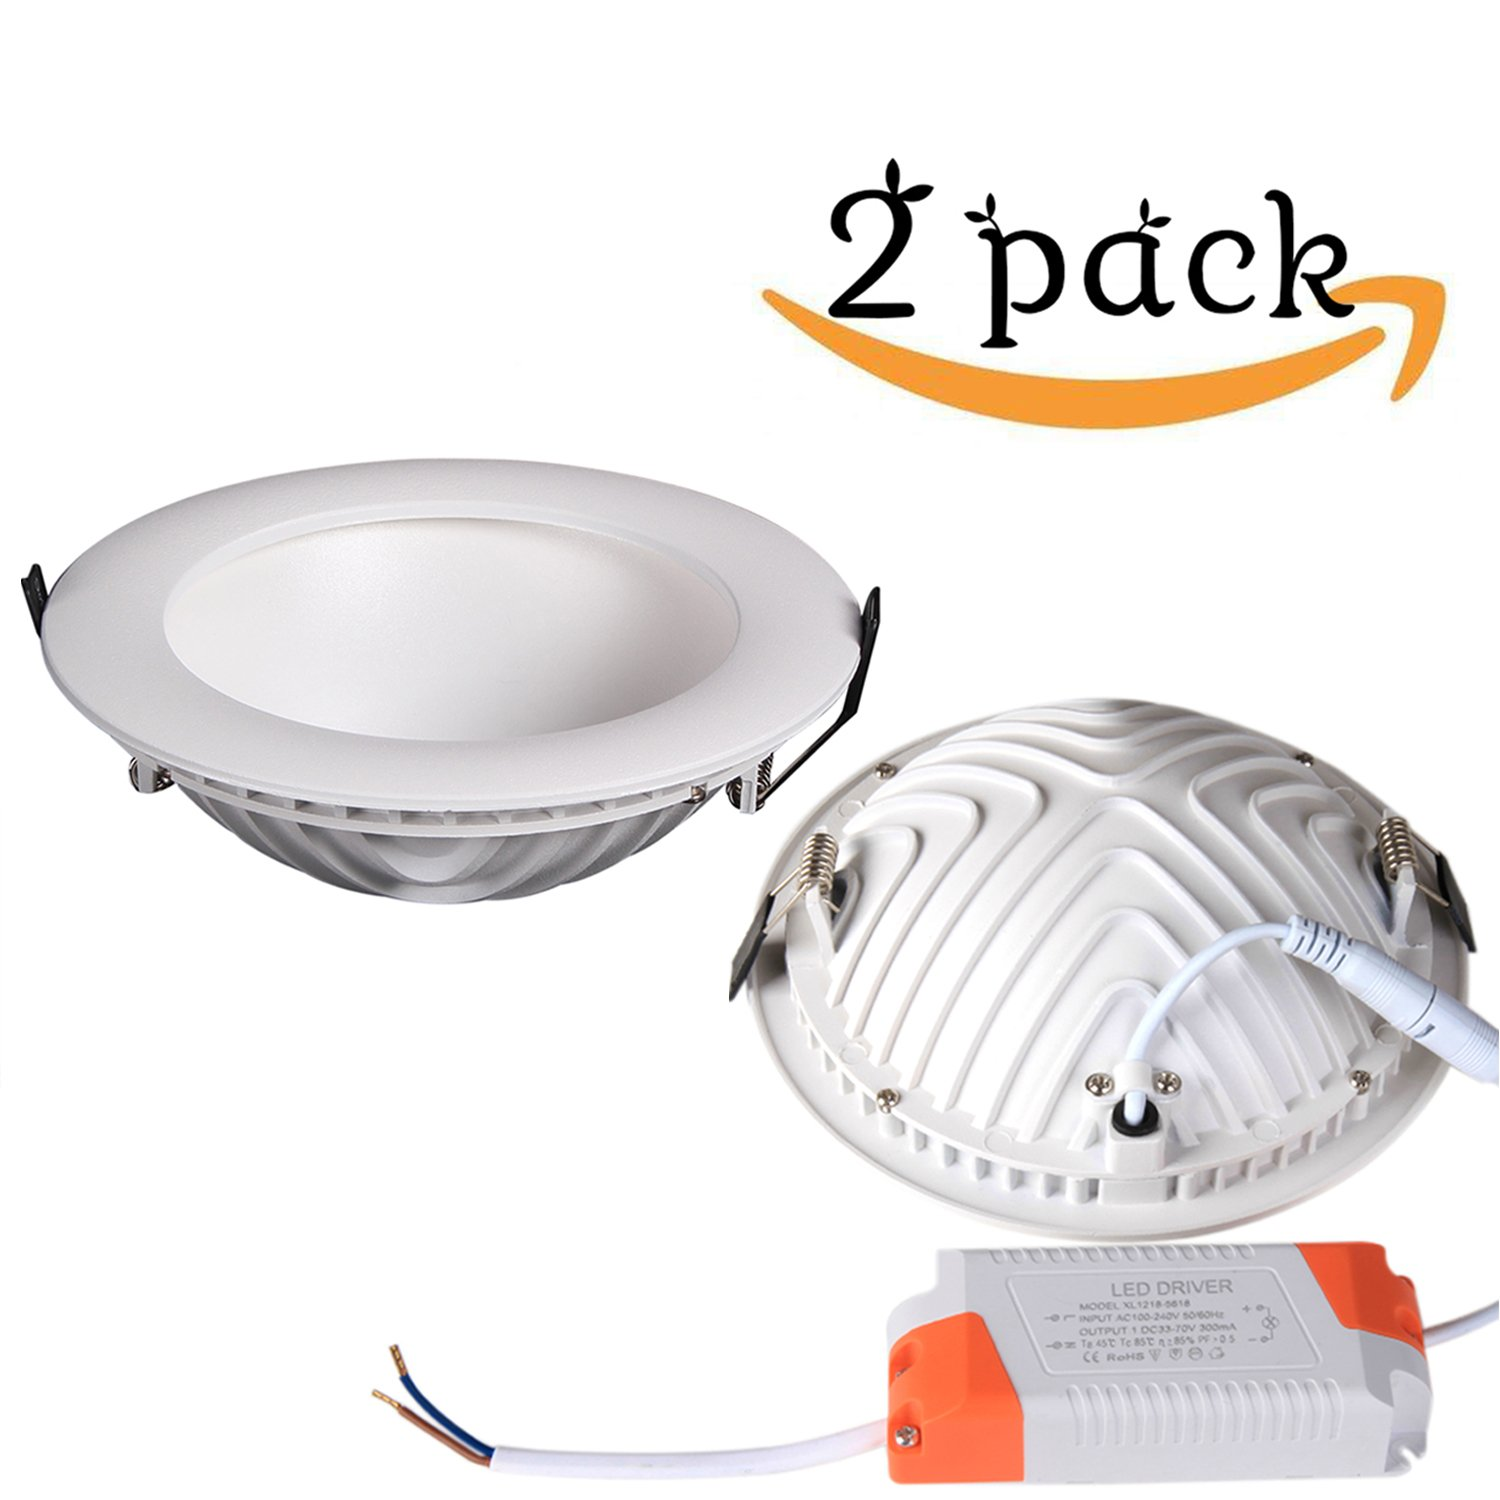 LED Recessed Lighting Fixture Retrofit Downlight Aluminum Ceiling Light 18Watt 6-inch 4000K Nature White CRI80+, Round Flush Mount Lighting,Down lighting for Home, Office, Commercial (2 PACK)… by CAMUSE ILLUME (Image #1)